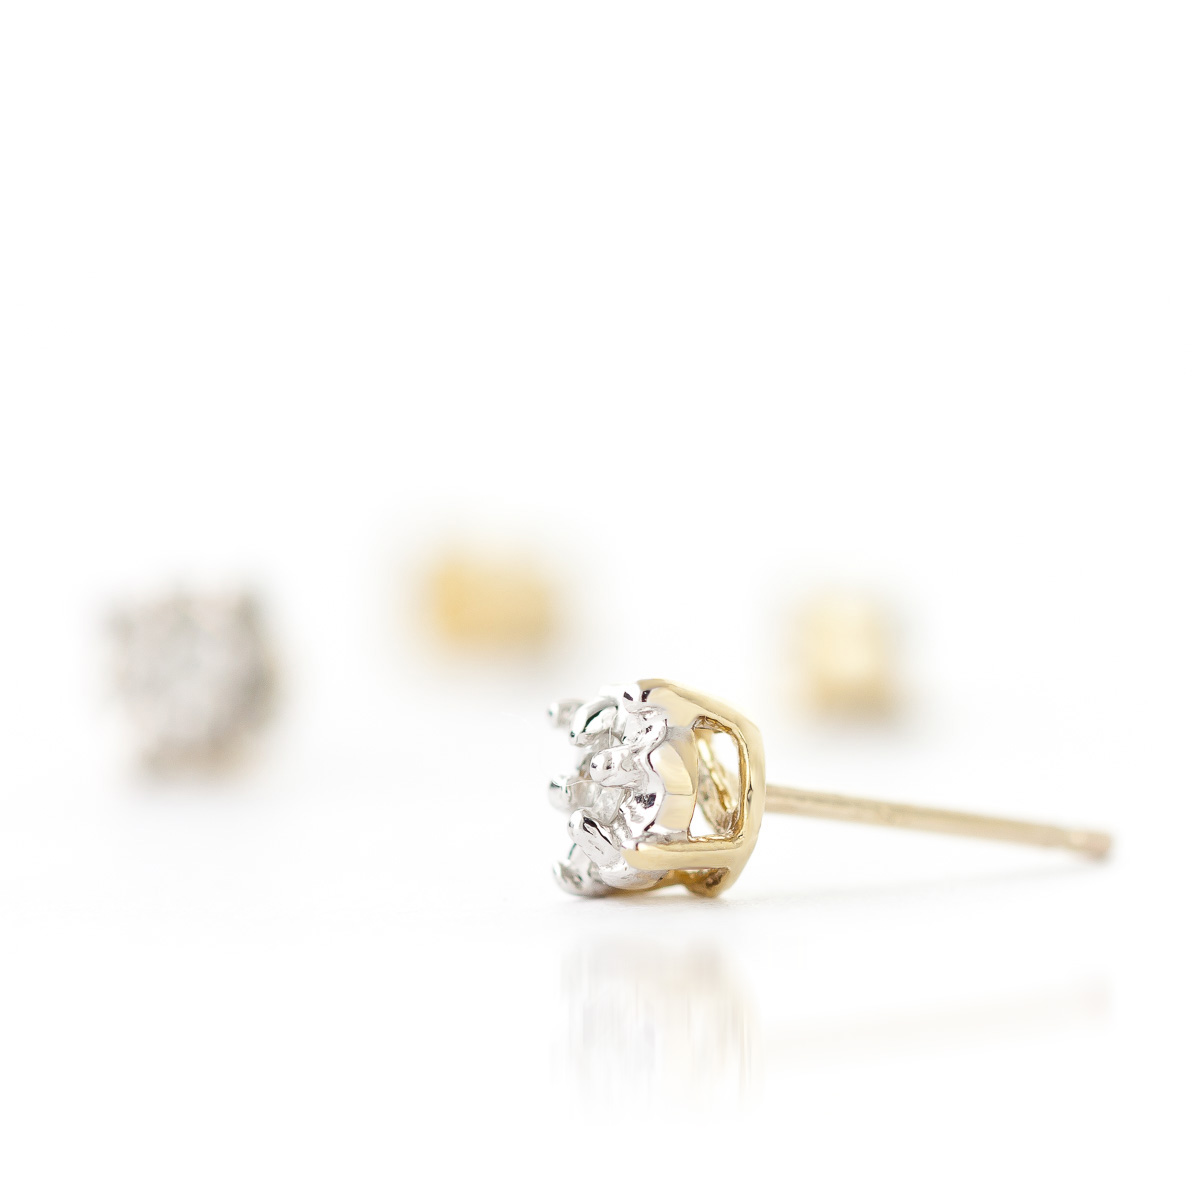 Diamond Stud Illusion Set Earrings 0.06 ctw in 9ct Gold